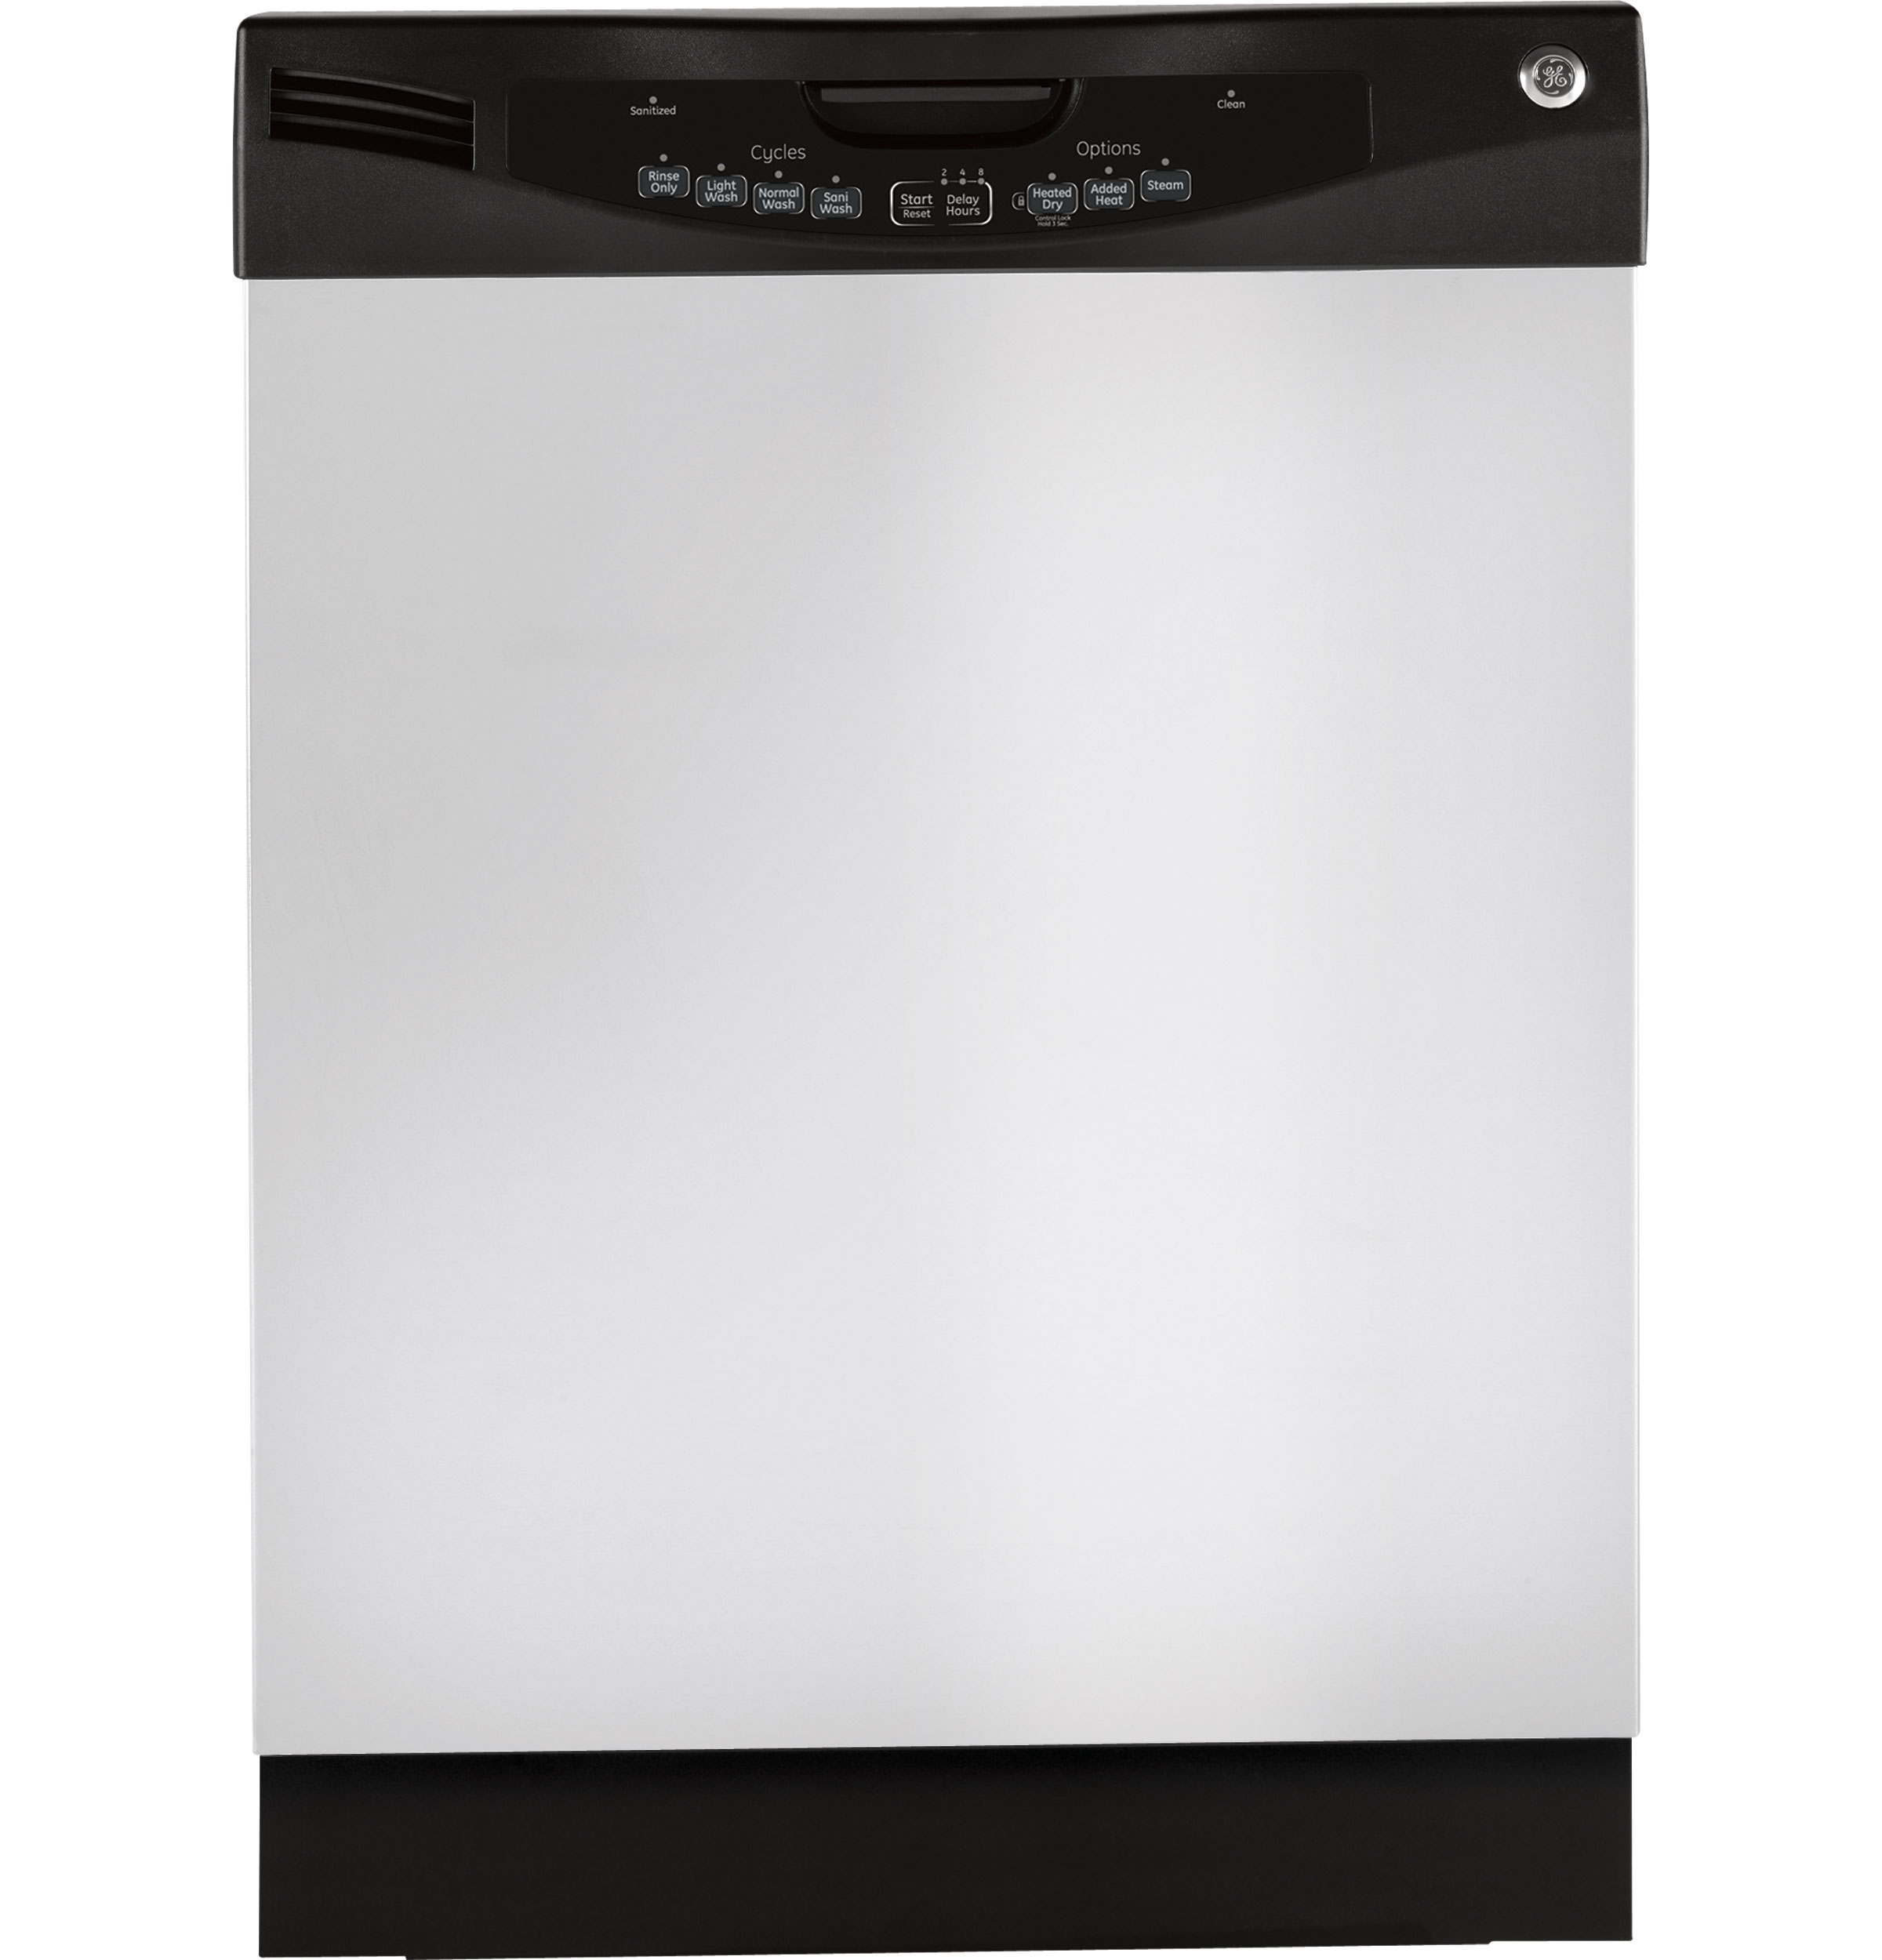 General Electric Dishwasher Troubleshooting Gear Tall Tub Built In Dishwasher Gld5664vss Ge Appliances